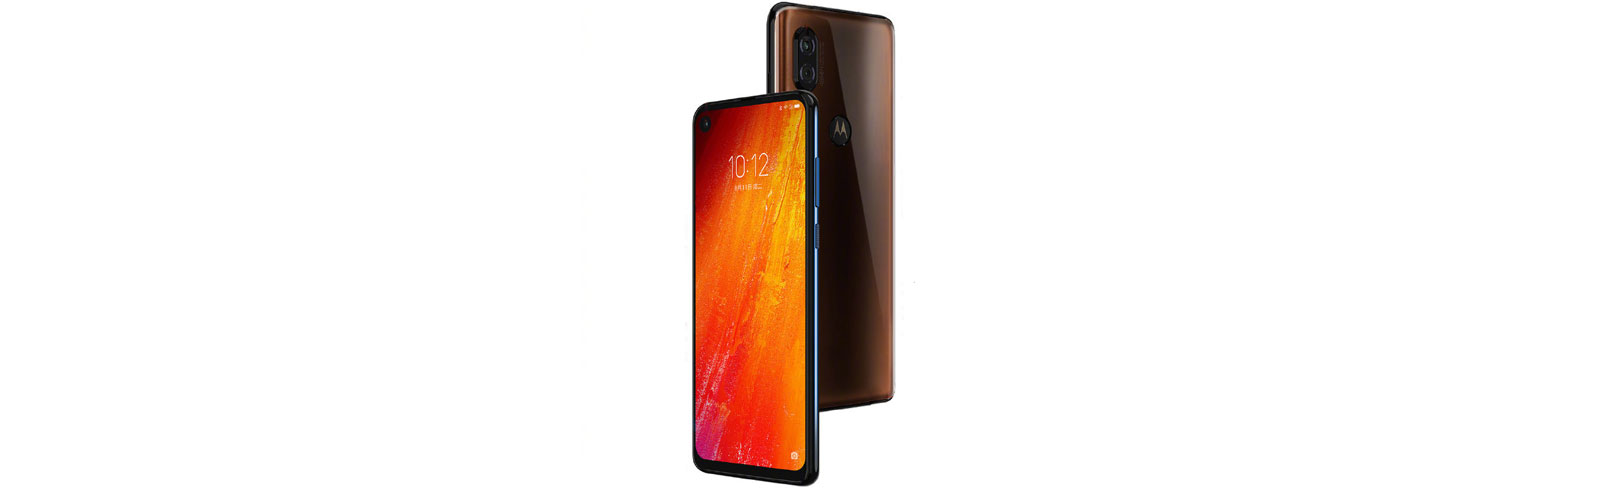 Motorola P50 is official priced at CNY 2499 (USD 364)